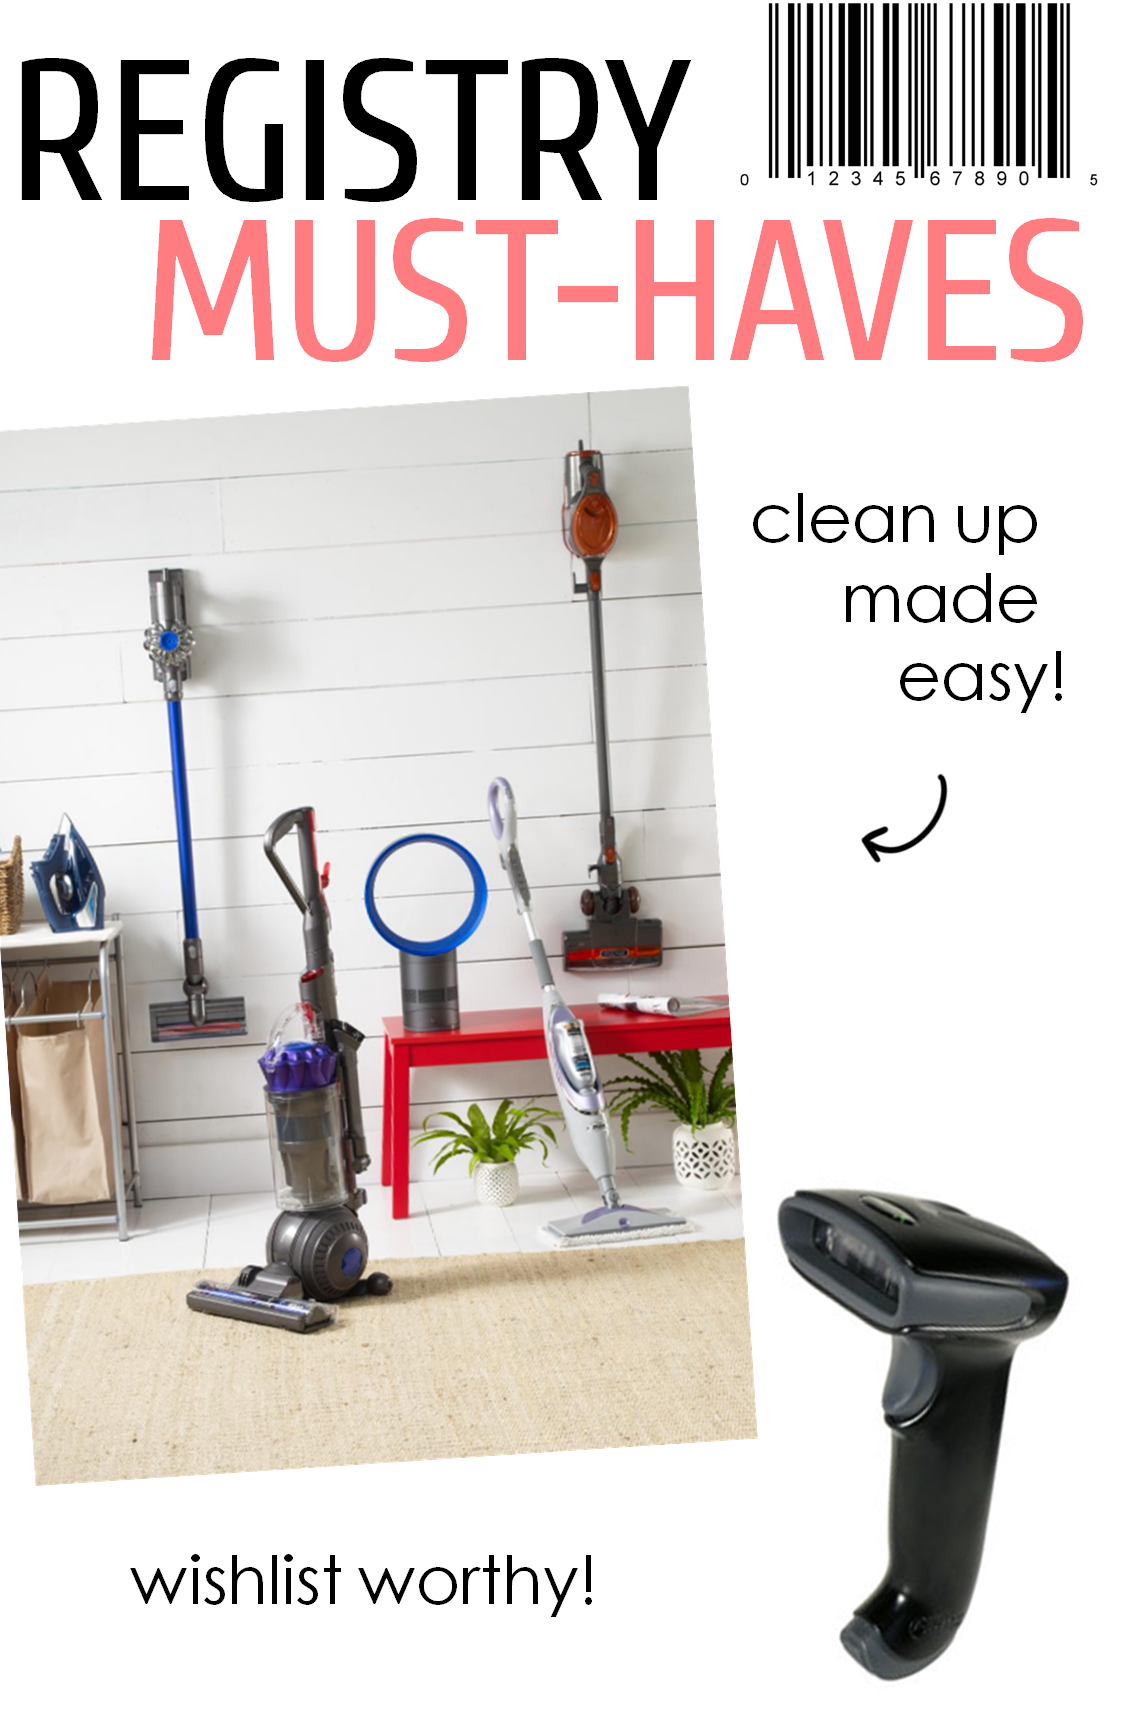 Registry Must-Haves http://www.theperfectpalette.com/2014/04/registry-must-haves-macys_17.html